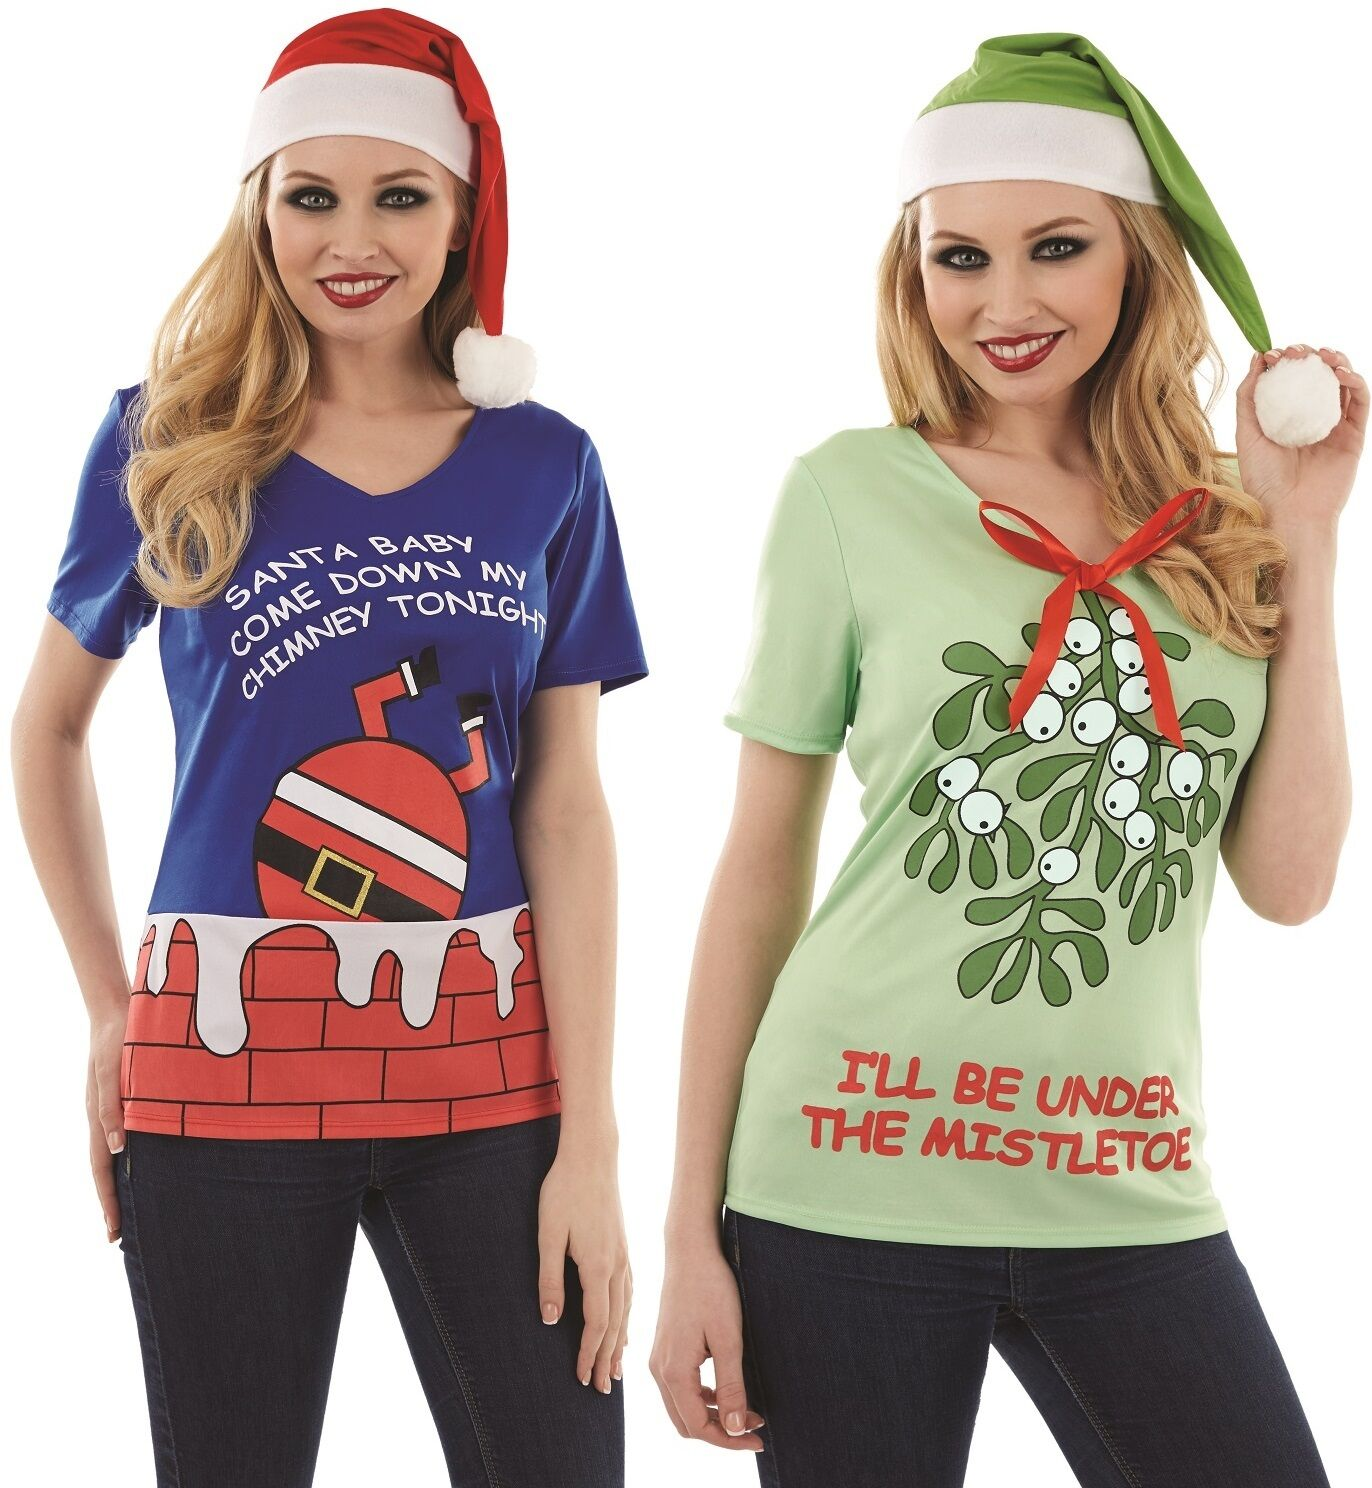 df0e02de1 Details about Ladies Funny Christmas T-Shirt & Hat Secret Santa Fancy Dress  UK 8-22 Plus Size